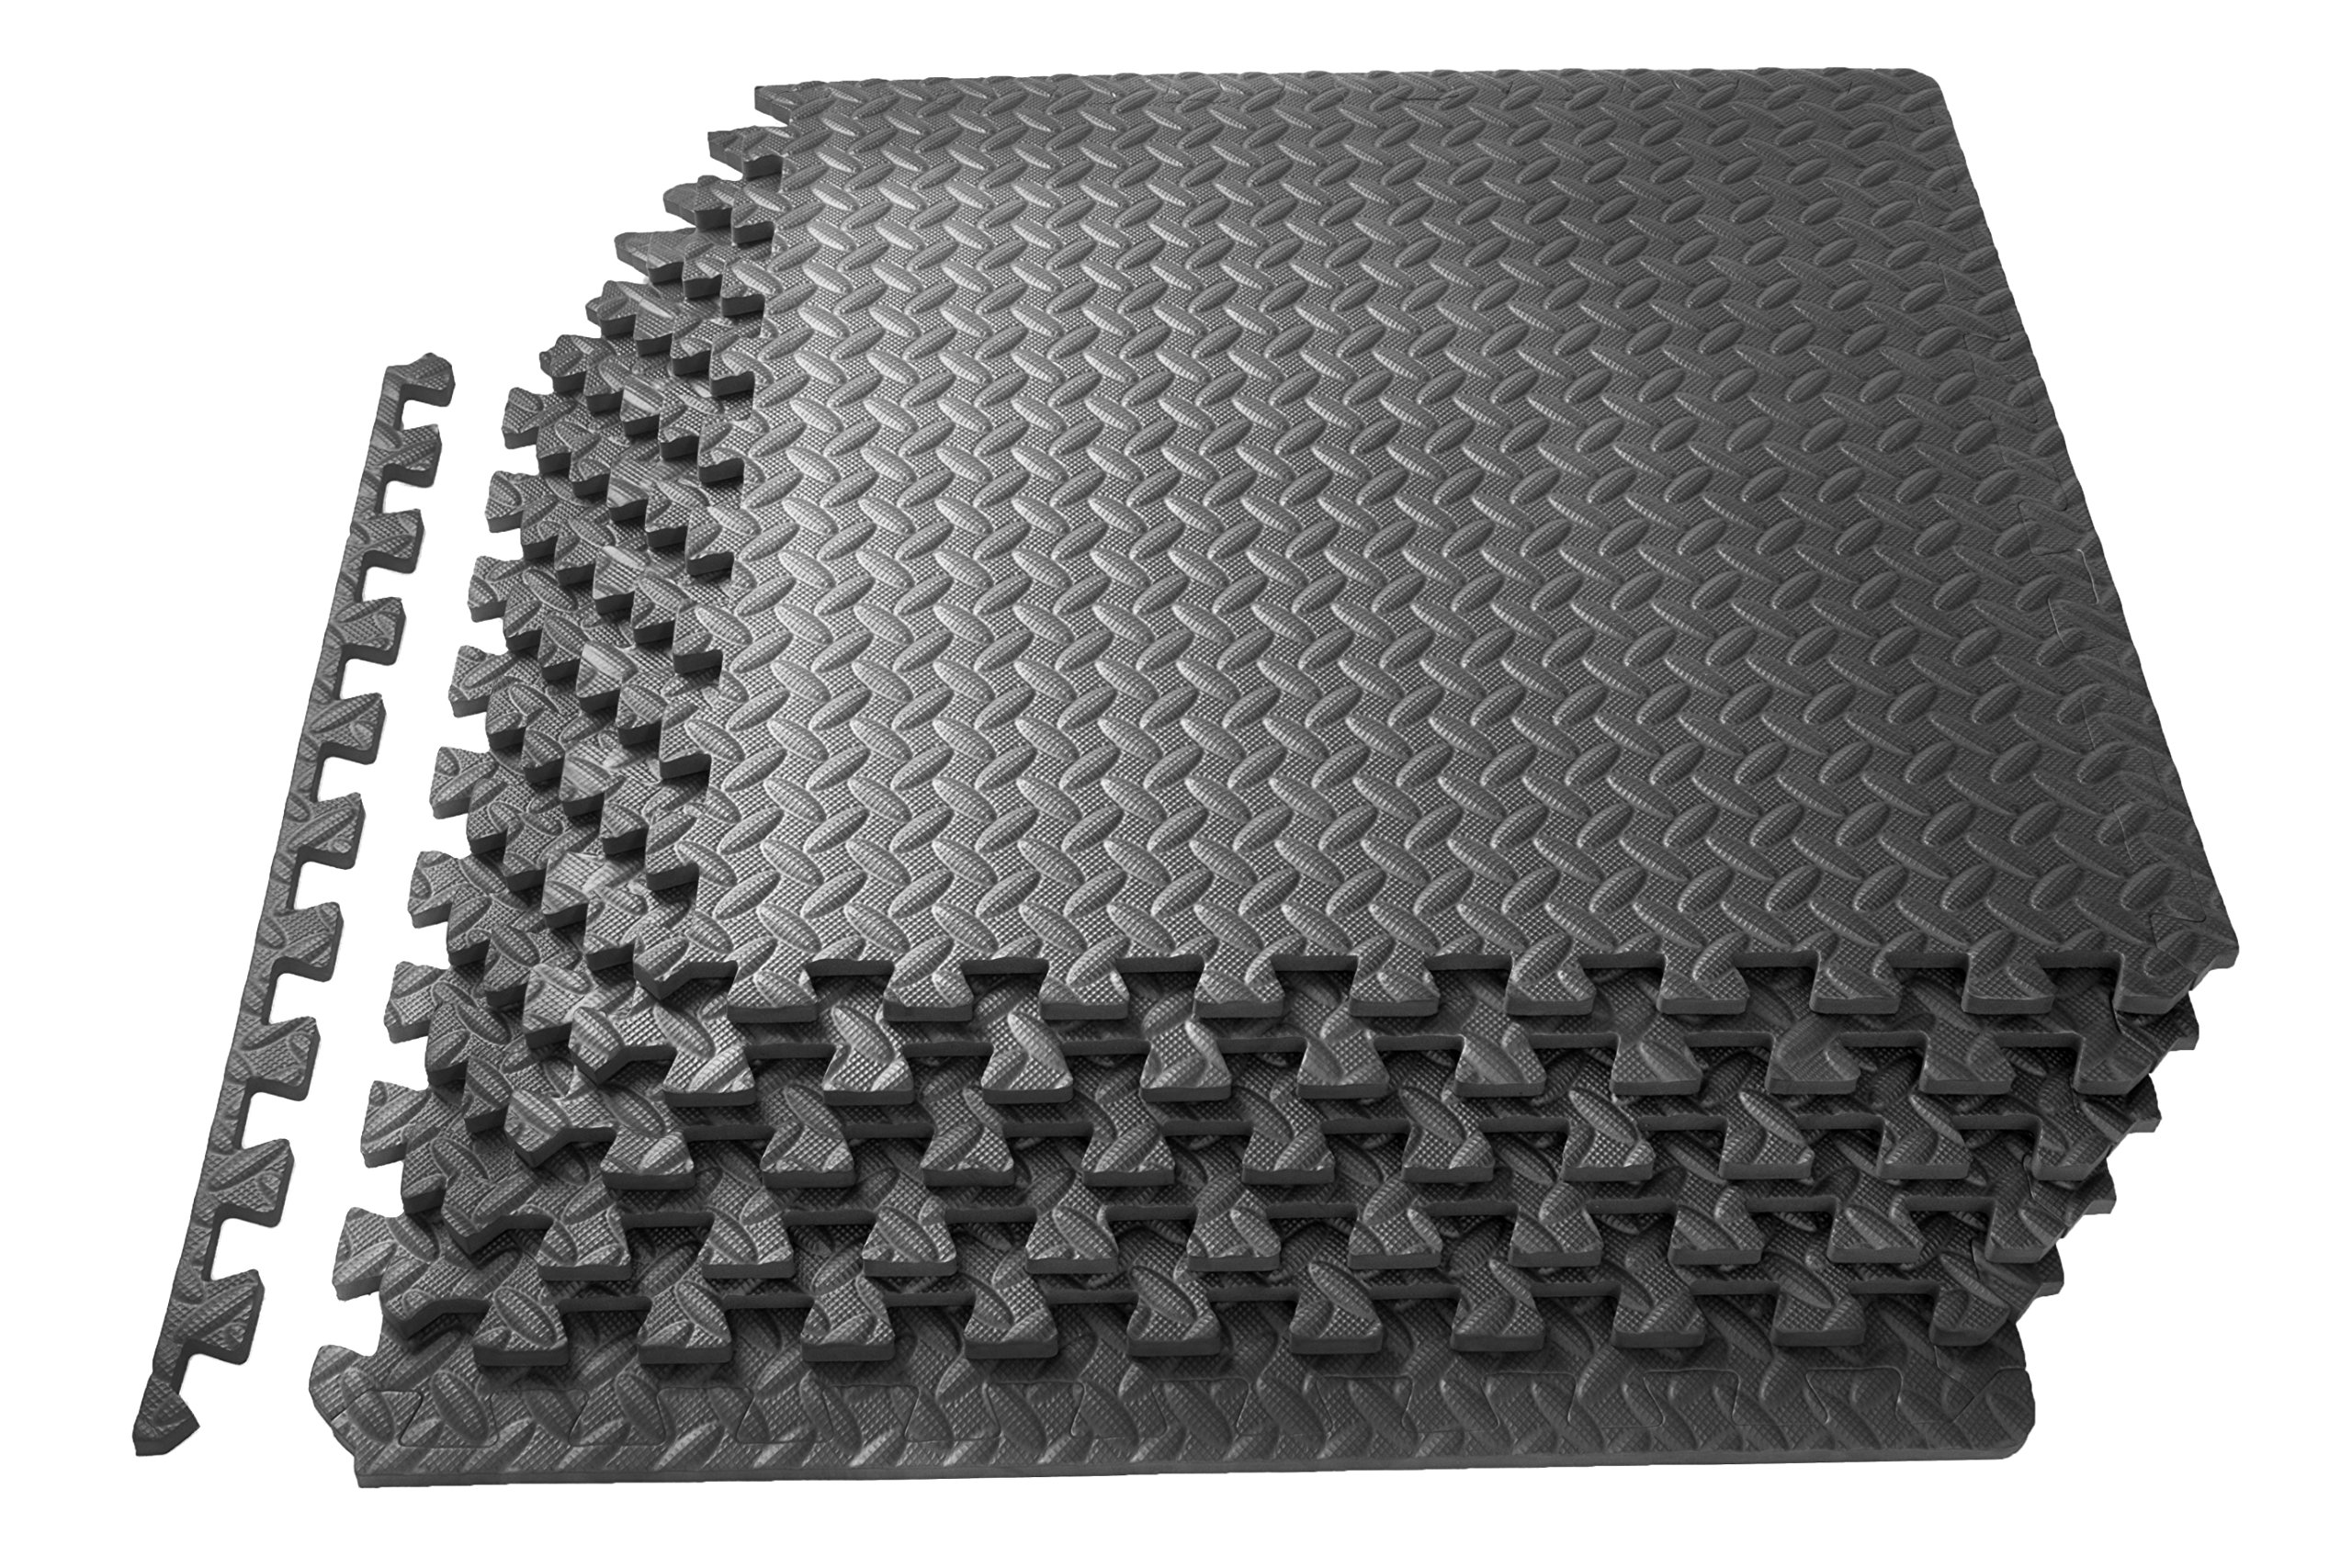 ProsourceFit Puzzle Exercise Mat, EVA Foam Interlocking Tiles, Protective Flooring for Gym Equipment and Cushion for Workouts, Grey